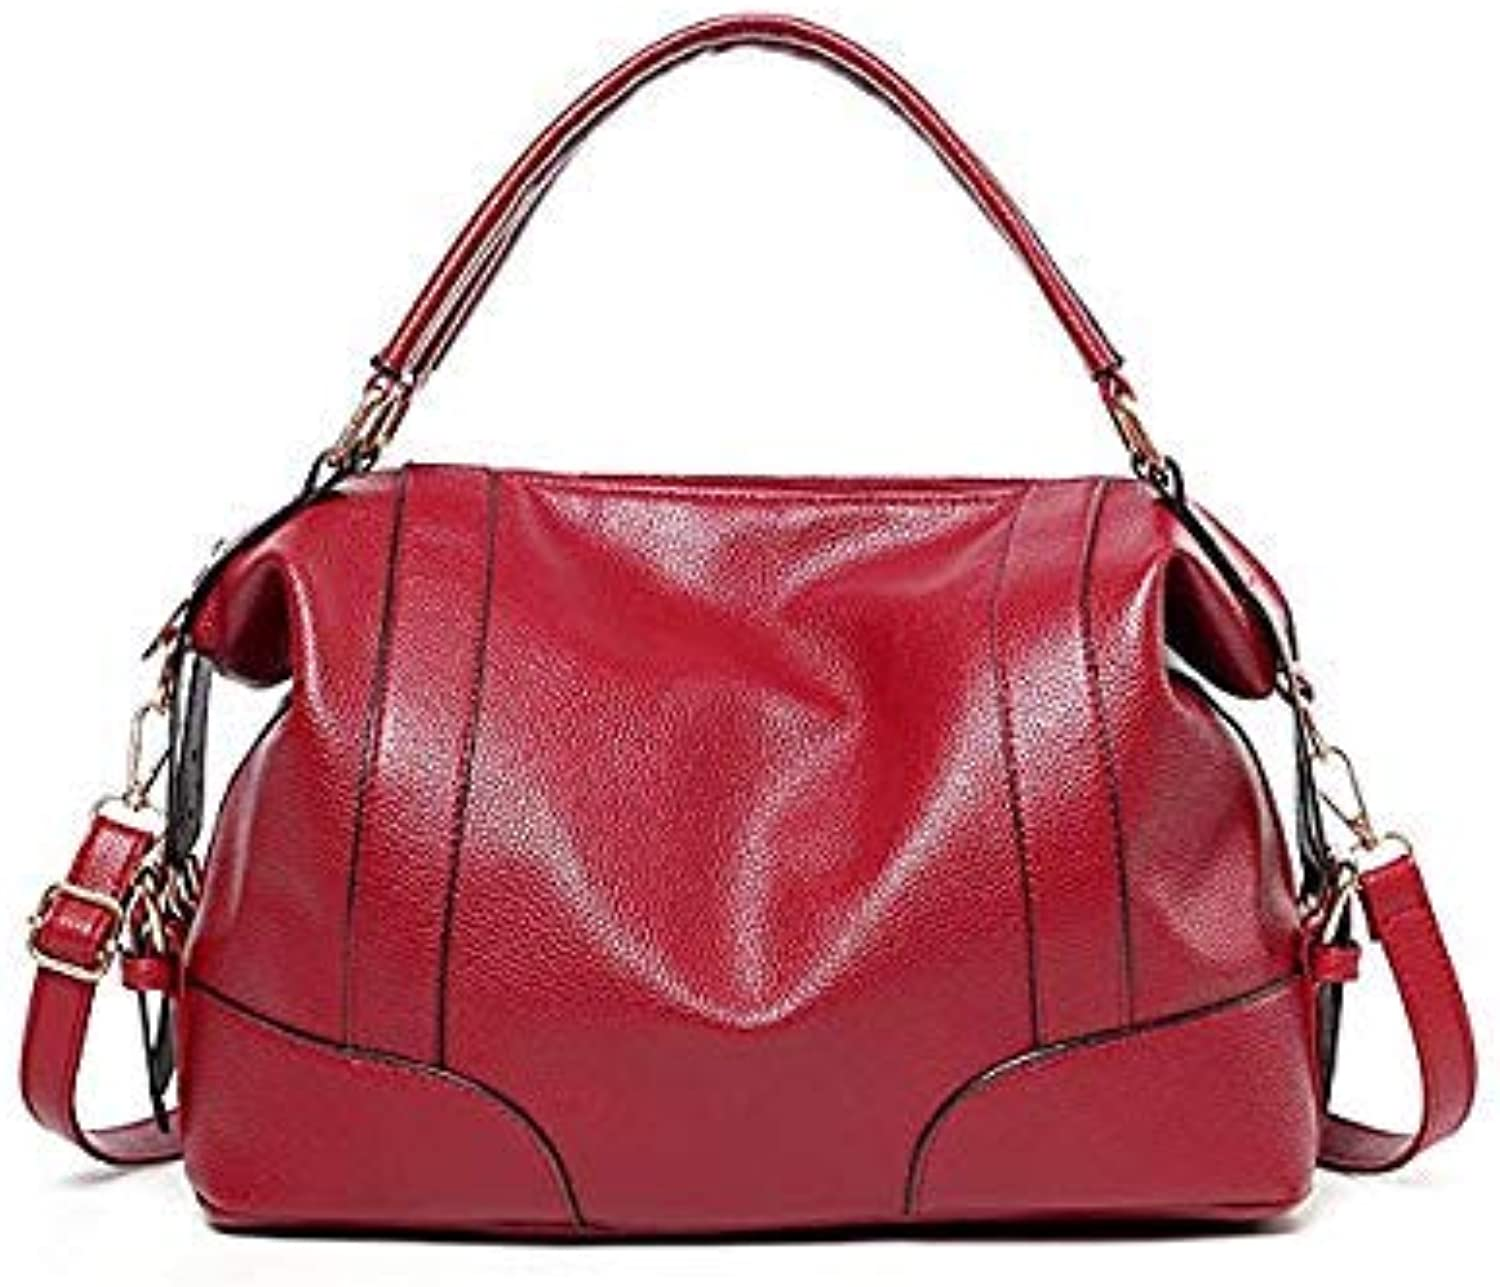 Bloomerang Casual Women Handbags Totes Ladies Shoulder Bags Top-Handle Bags Fashion High Quality PU Leather Large Capacity 2e3284 color Red